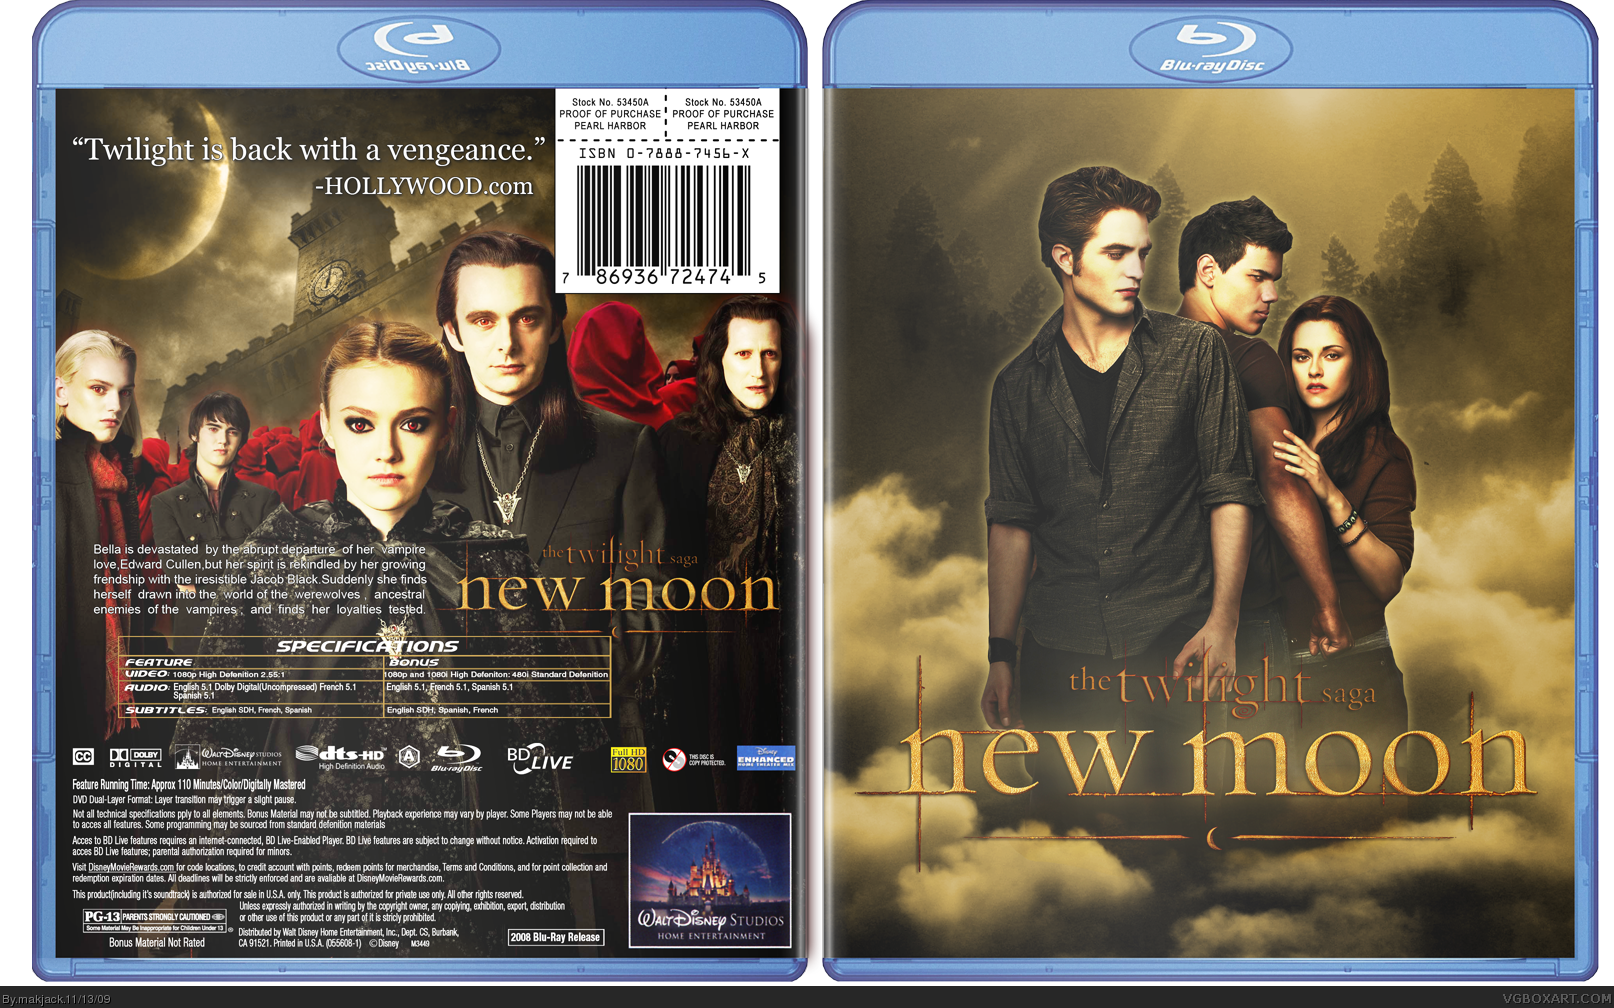 New Moon box cover